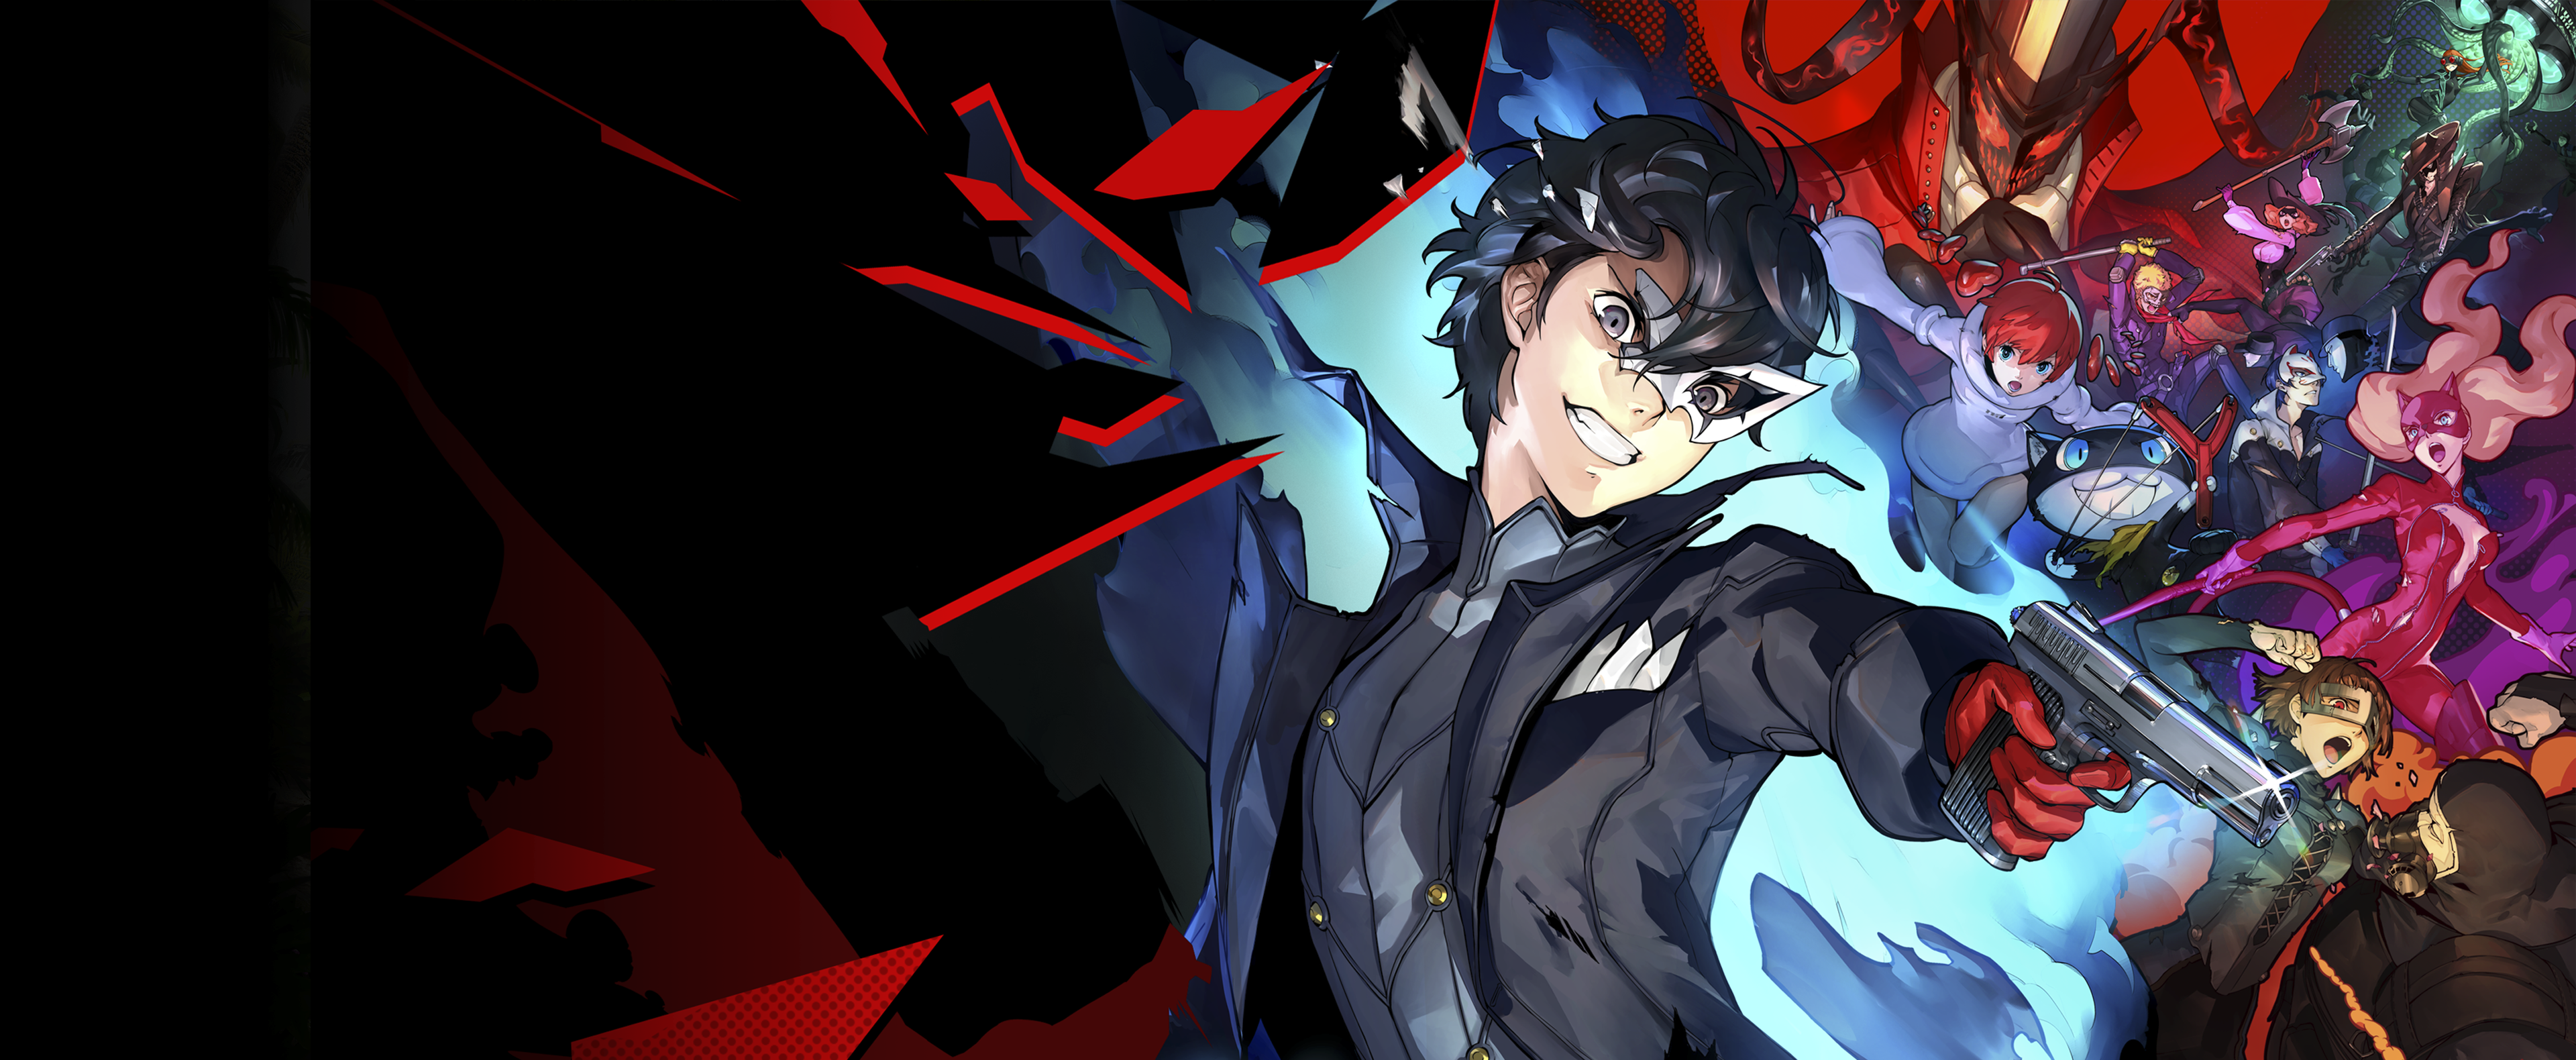 Persona 5 Strikers-key art